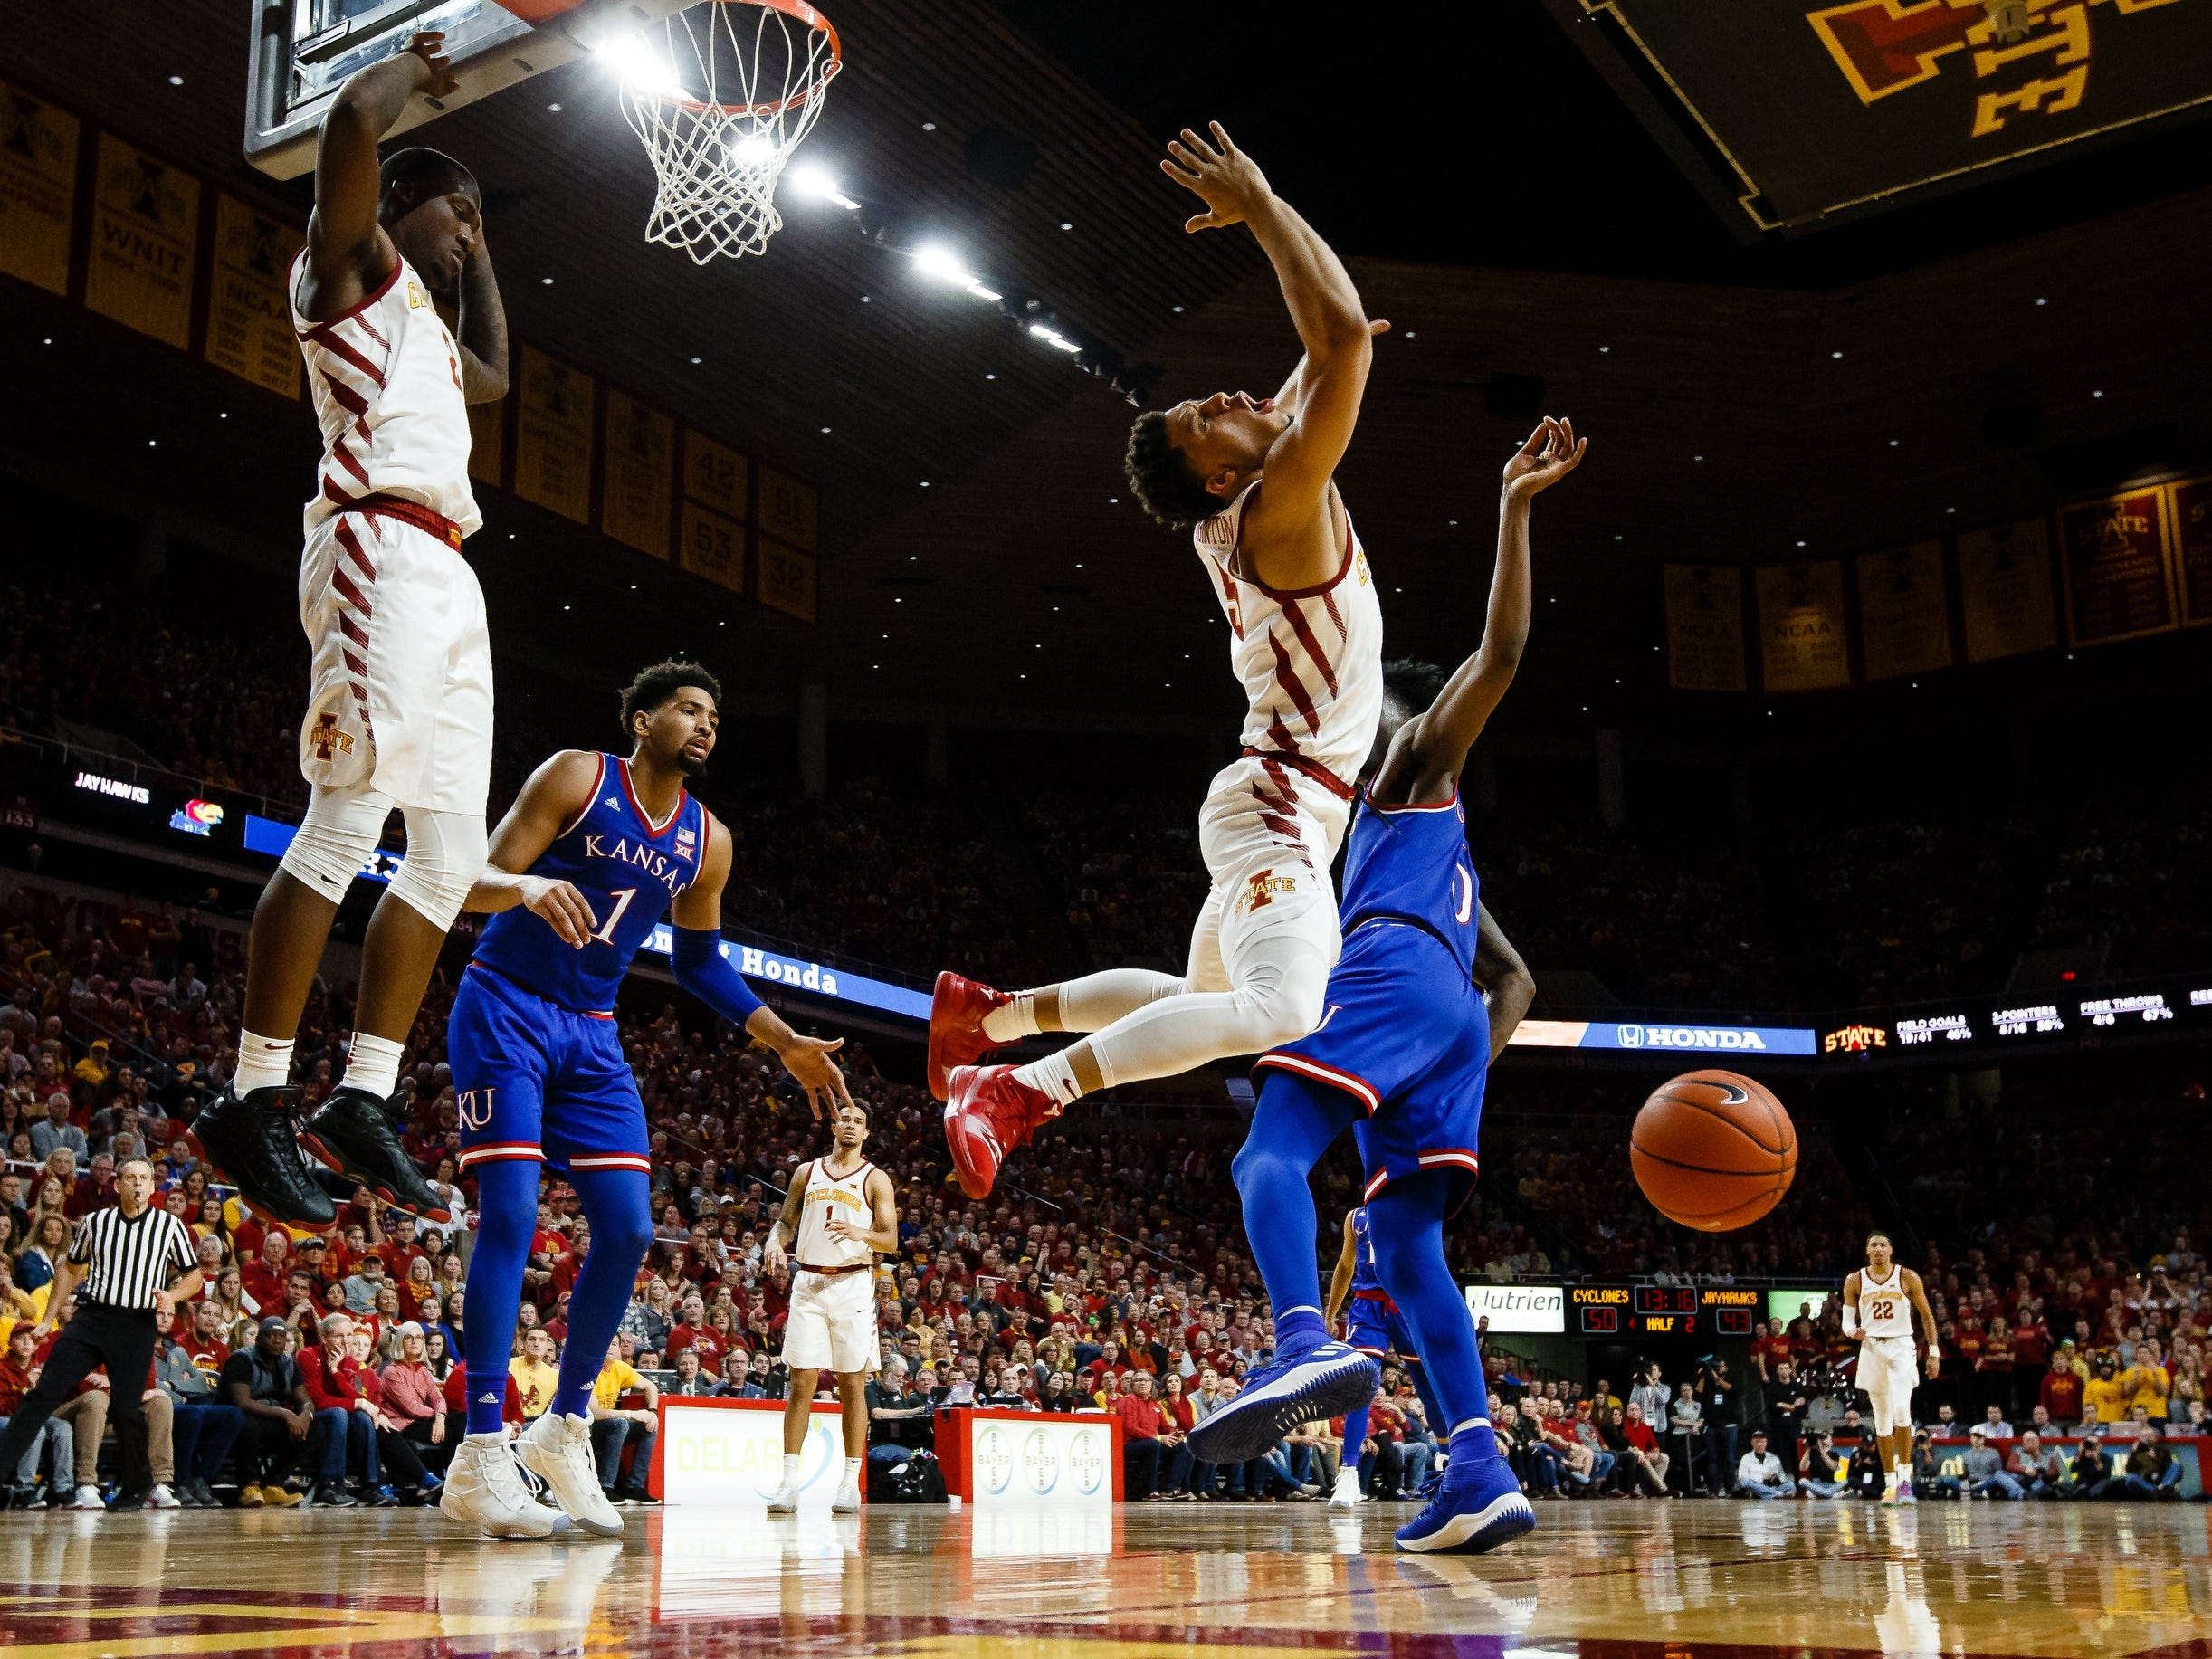 Iowa State's Lindell Wigginton (5) is fouled by Kansas' Marcus Garrett (0) during the second half of their basketball game on Saturday, Jan. 5, 2019, in Ames. Iowa State would go on to beat Kansas 77-60.